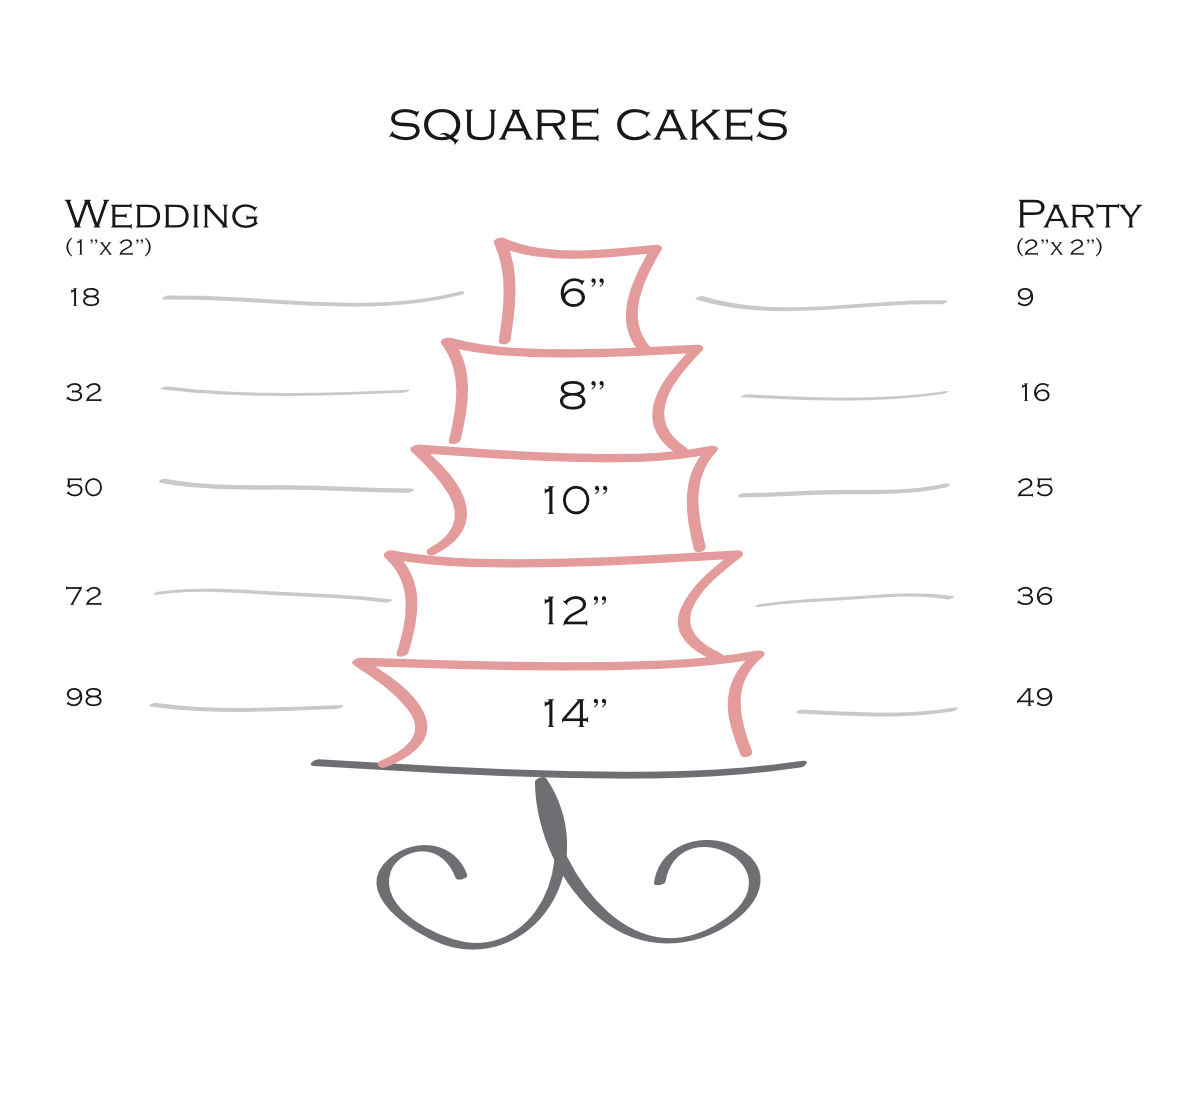 SQUARE CAKE SIZES - Plan It Cake, Cake Design - Somerset